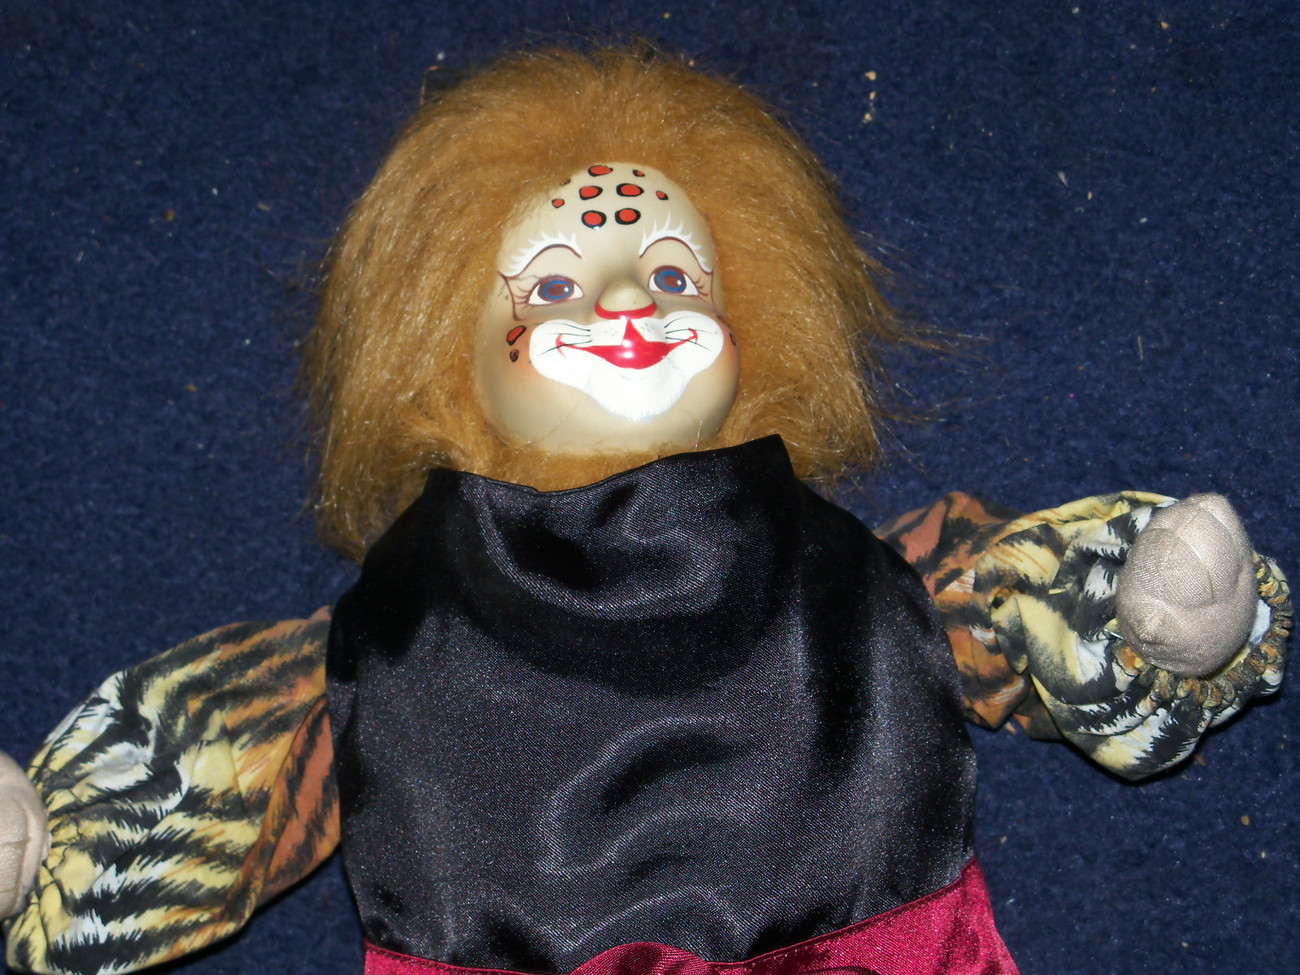 Primary image for VERY CREEPY OLD DOLL MERLIN APRS MOM25705 WILD STRANGE estate find